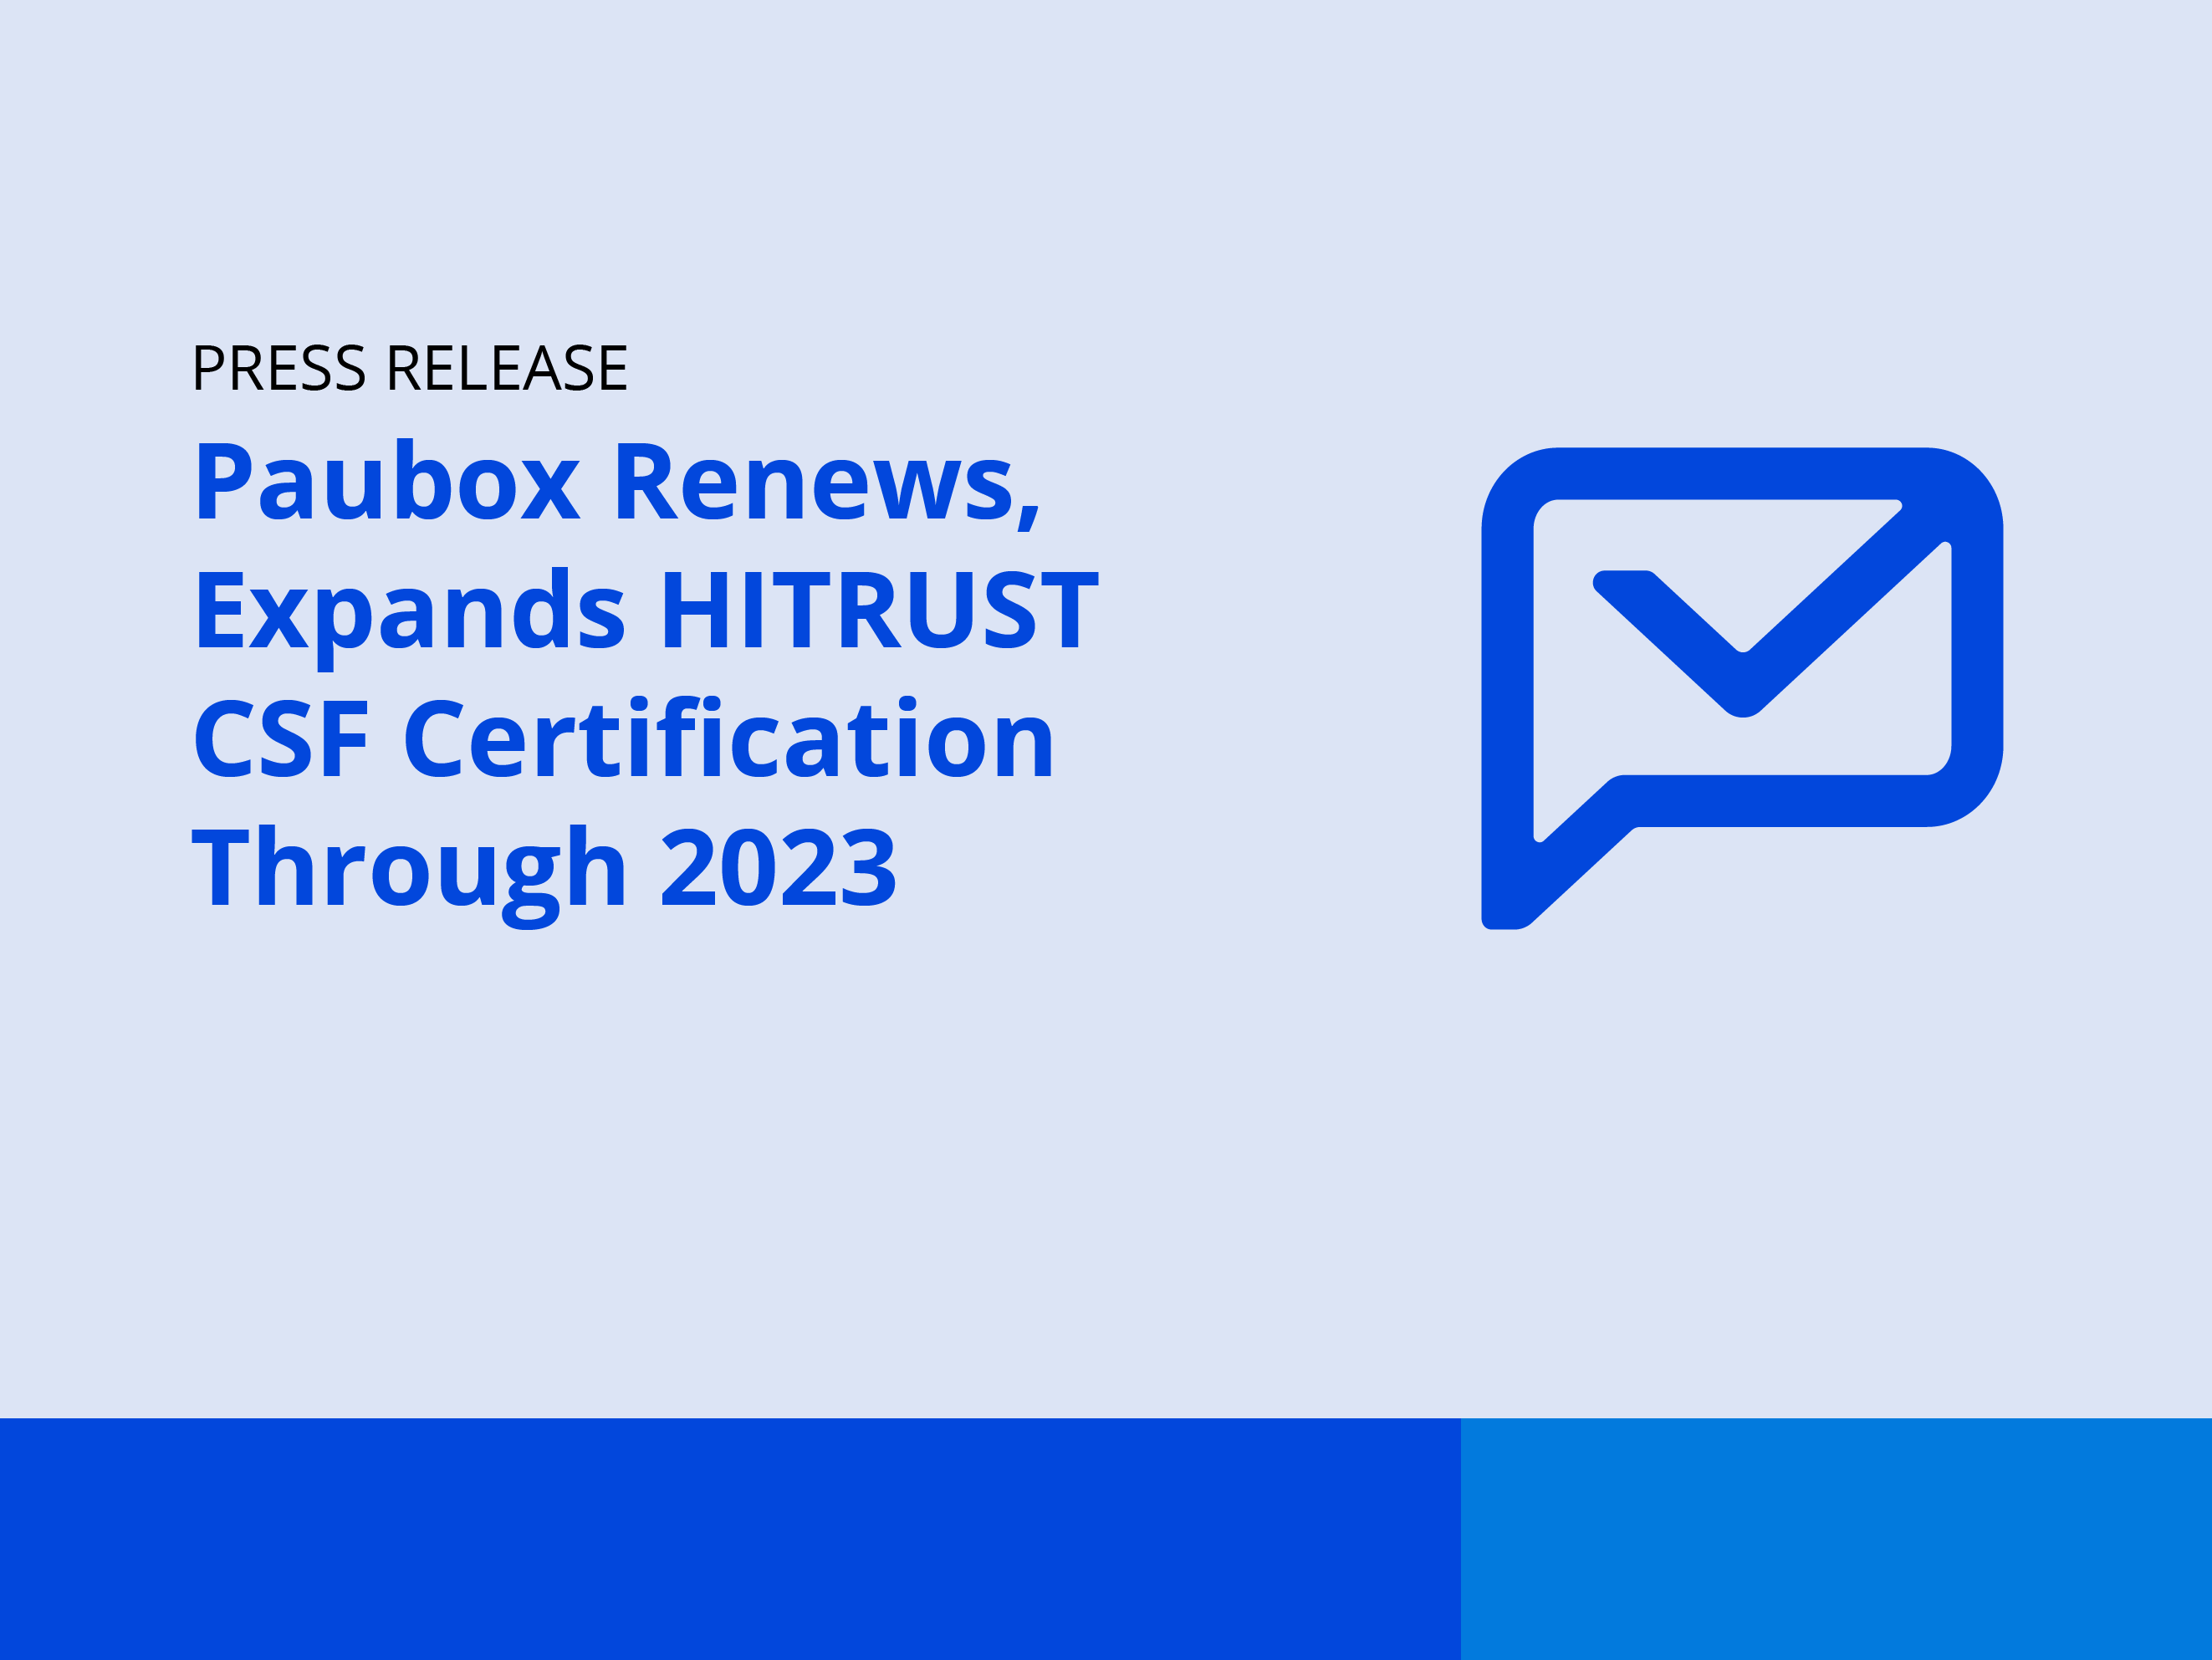 Paubox Renews, Expands HITRUST CSF Certification Through 2023